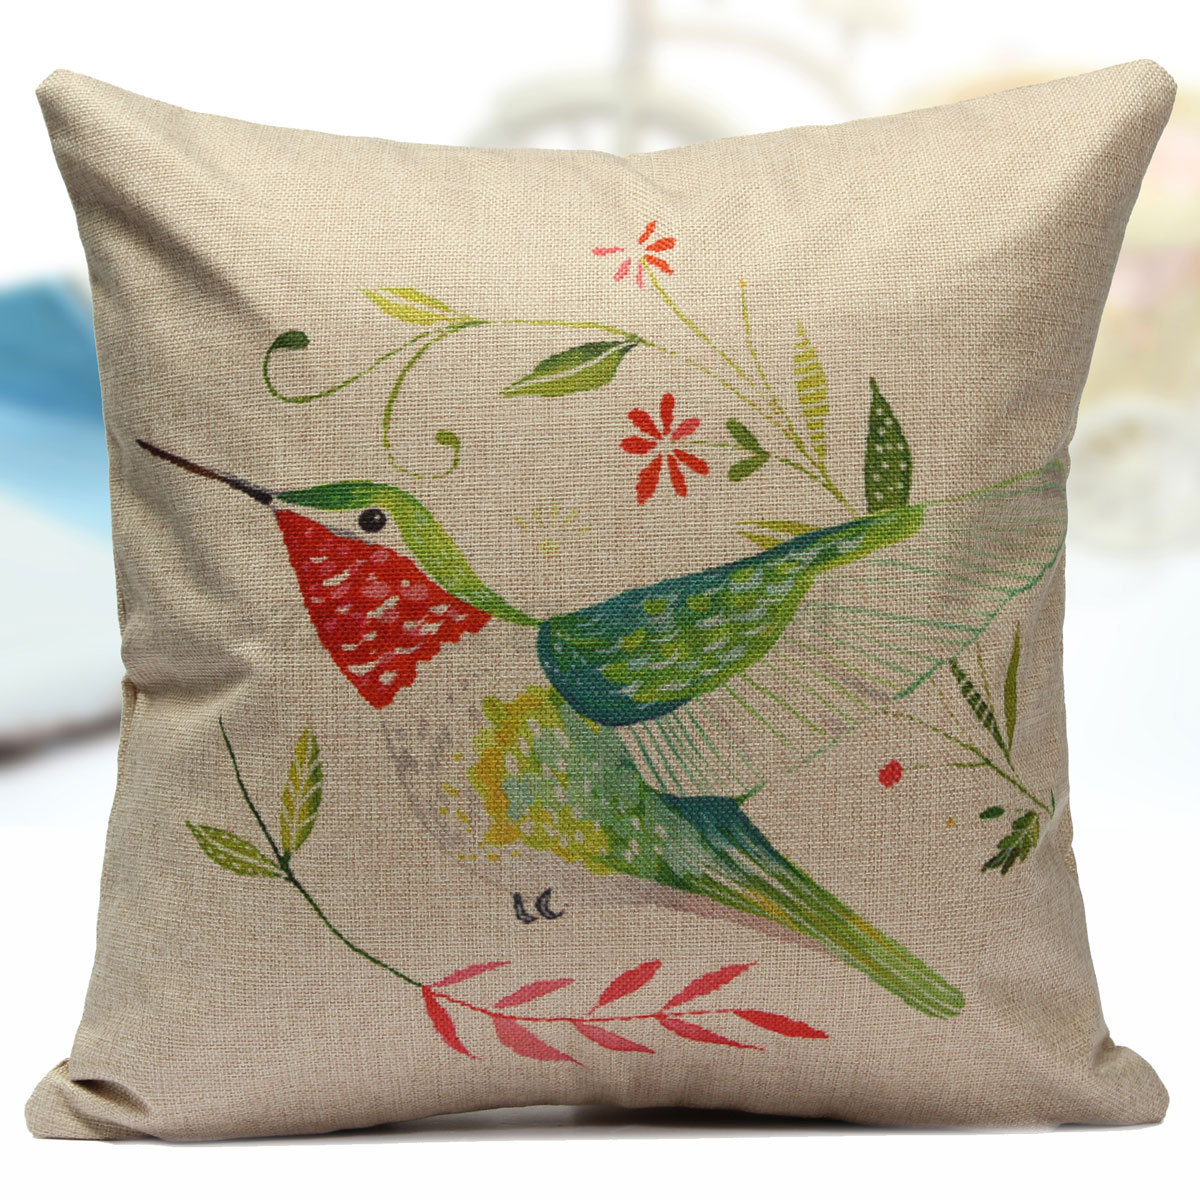 Square Throw Pillow Cases : Vintage Square Cotton Linen Throw Pillow Cases Cushion Cover Home Car Decor UK eBay